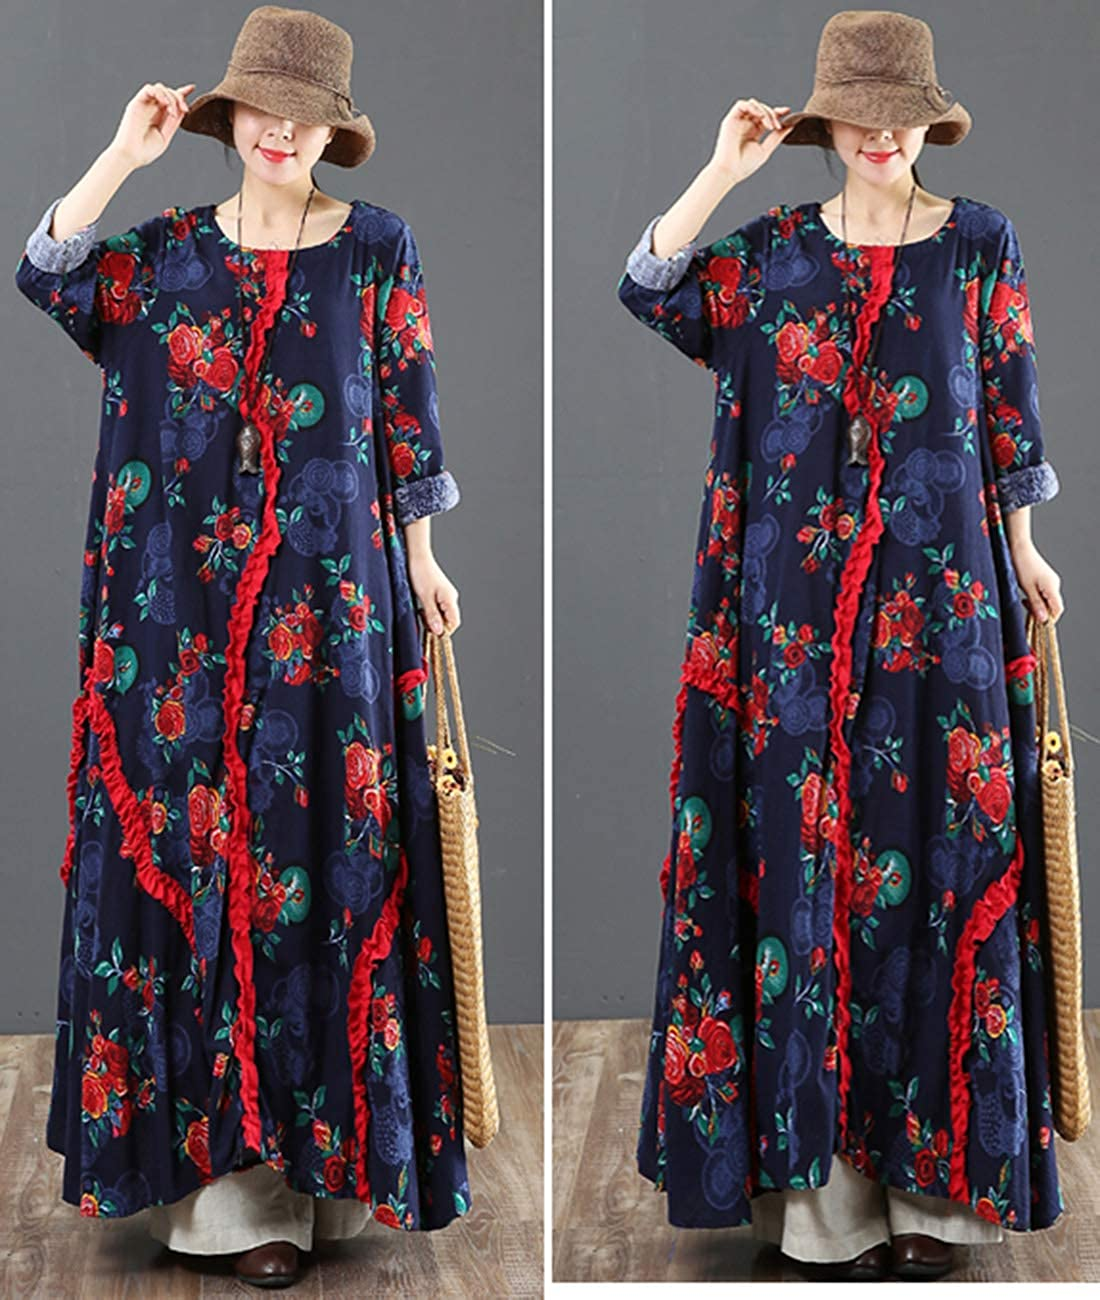 YESNO Women Long Maxi Baggy Dress Casual Plus Size Lagenlook Pop Art Oil Painting//Pocket F01CA